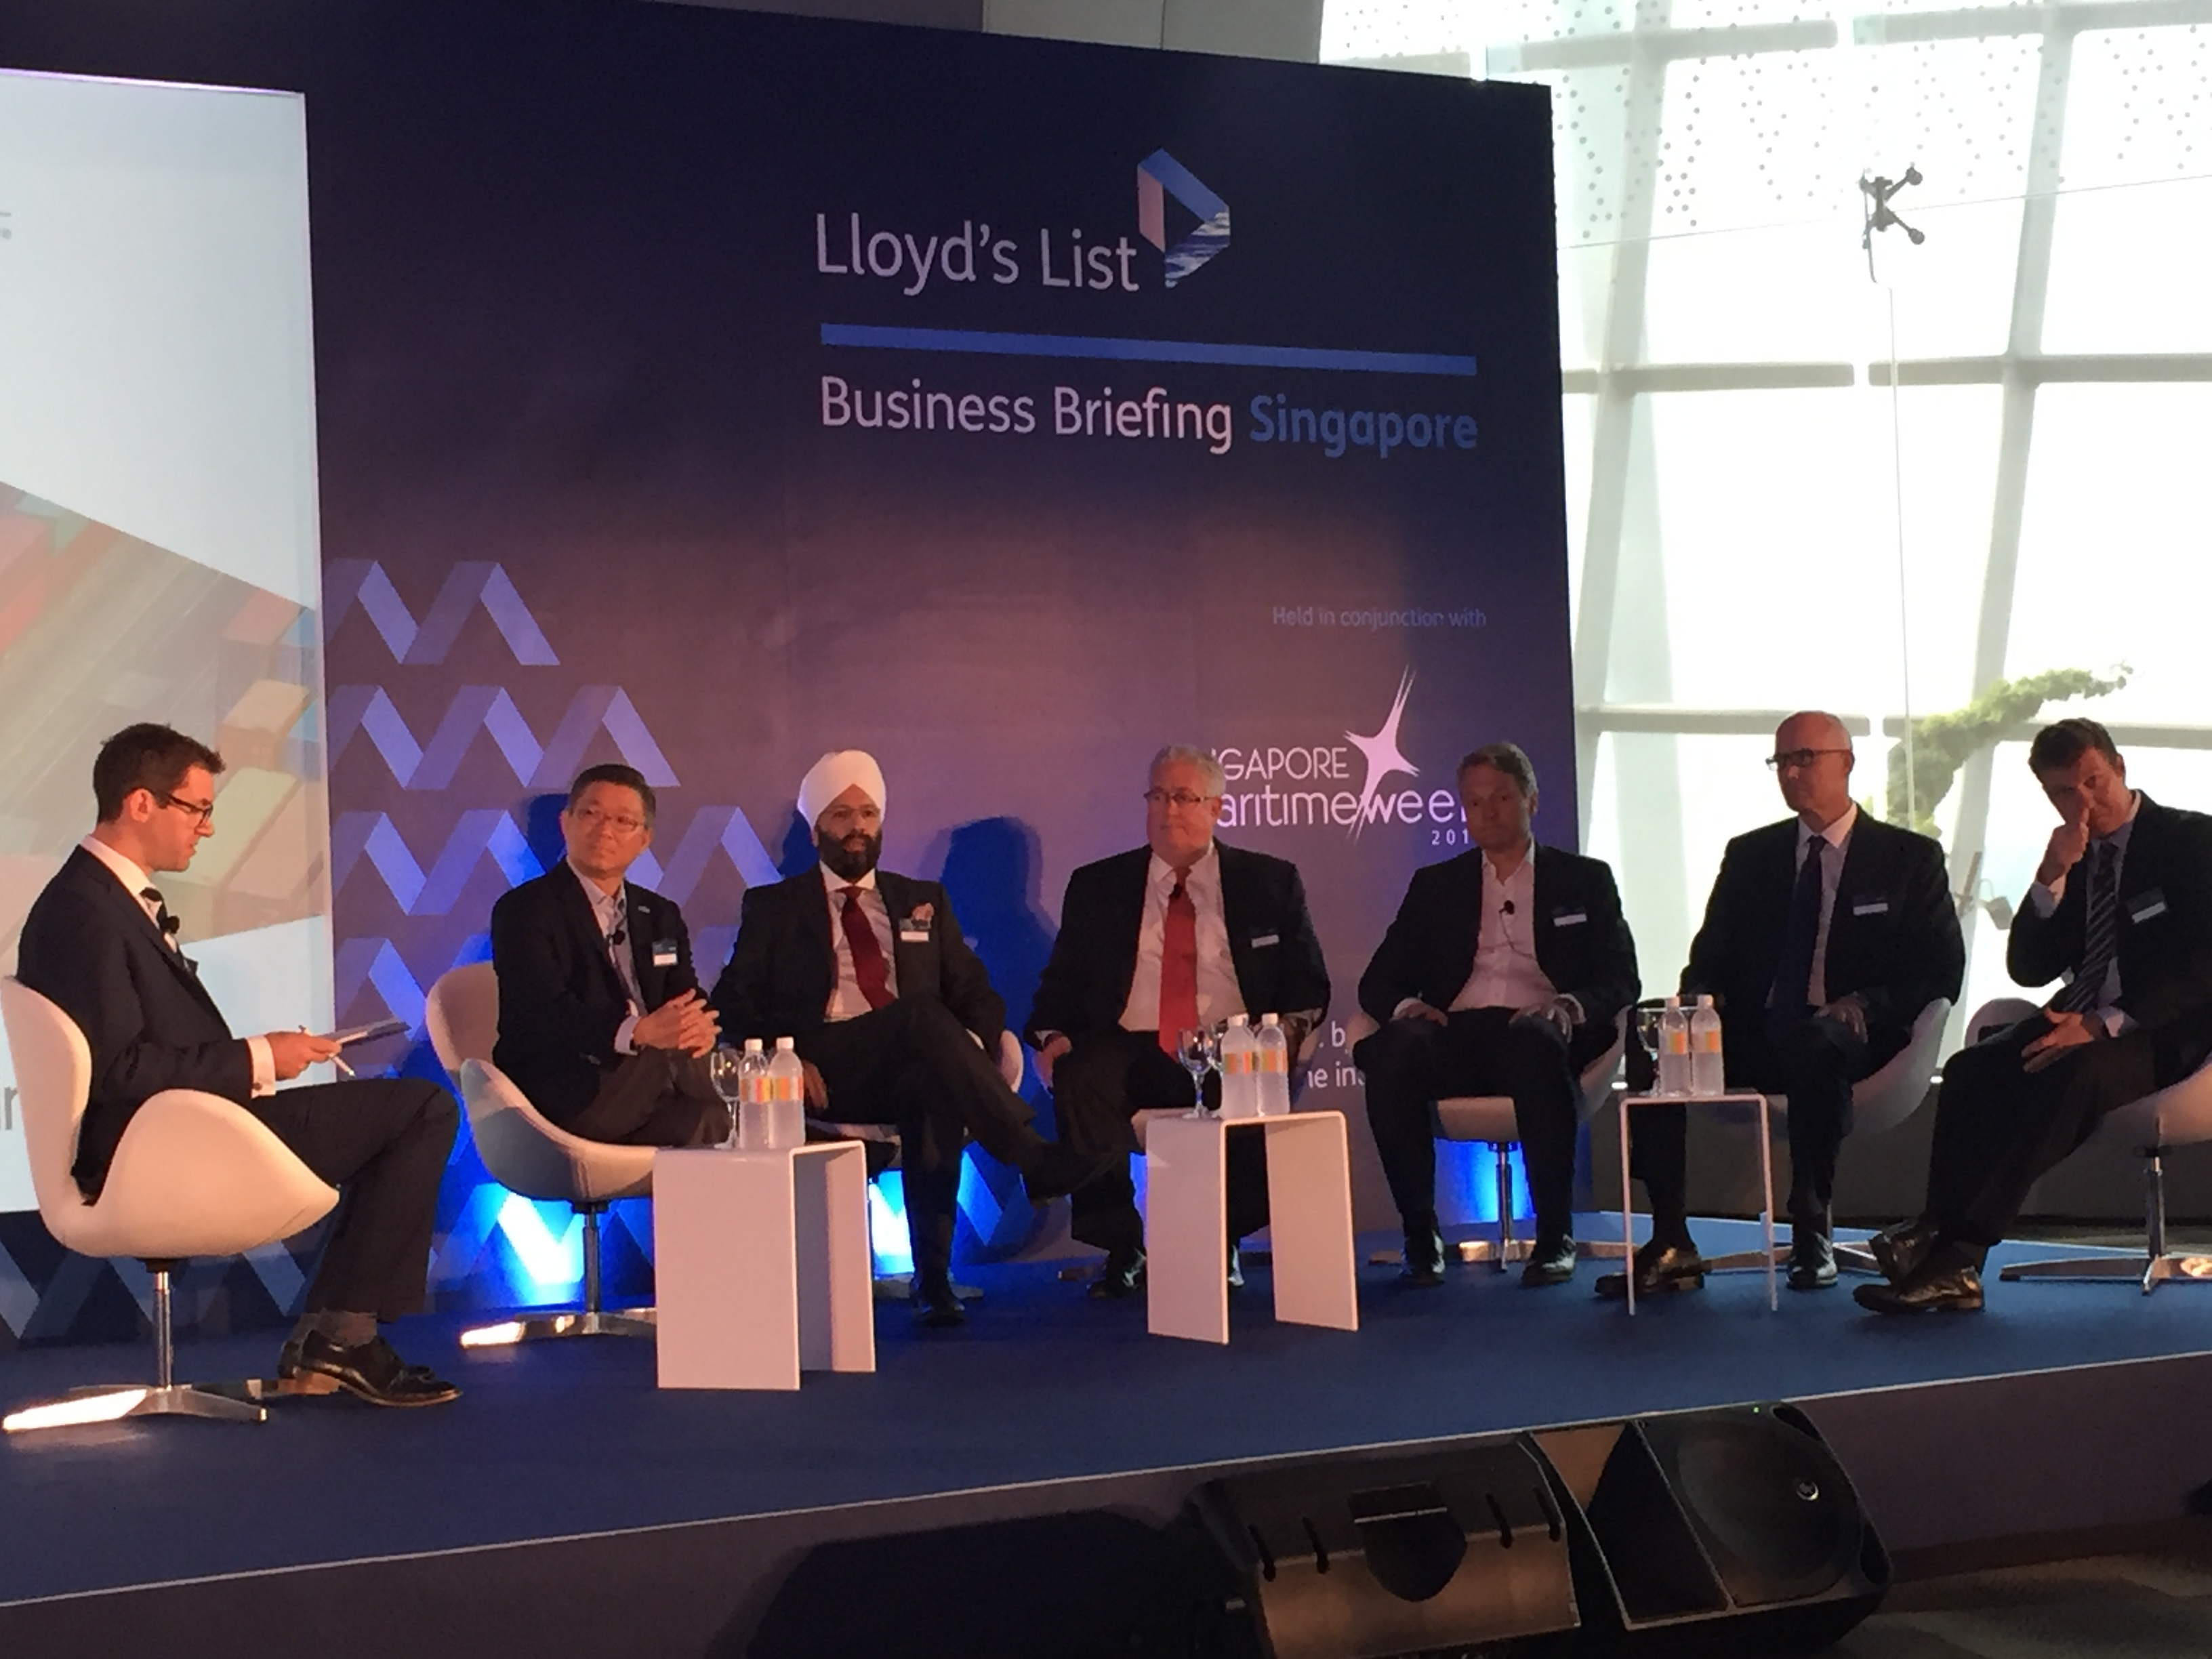 Lloyd's List Business Briefing 2017 Singapore April 2017